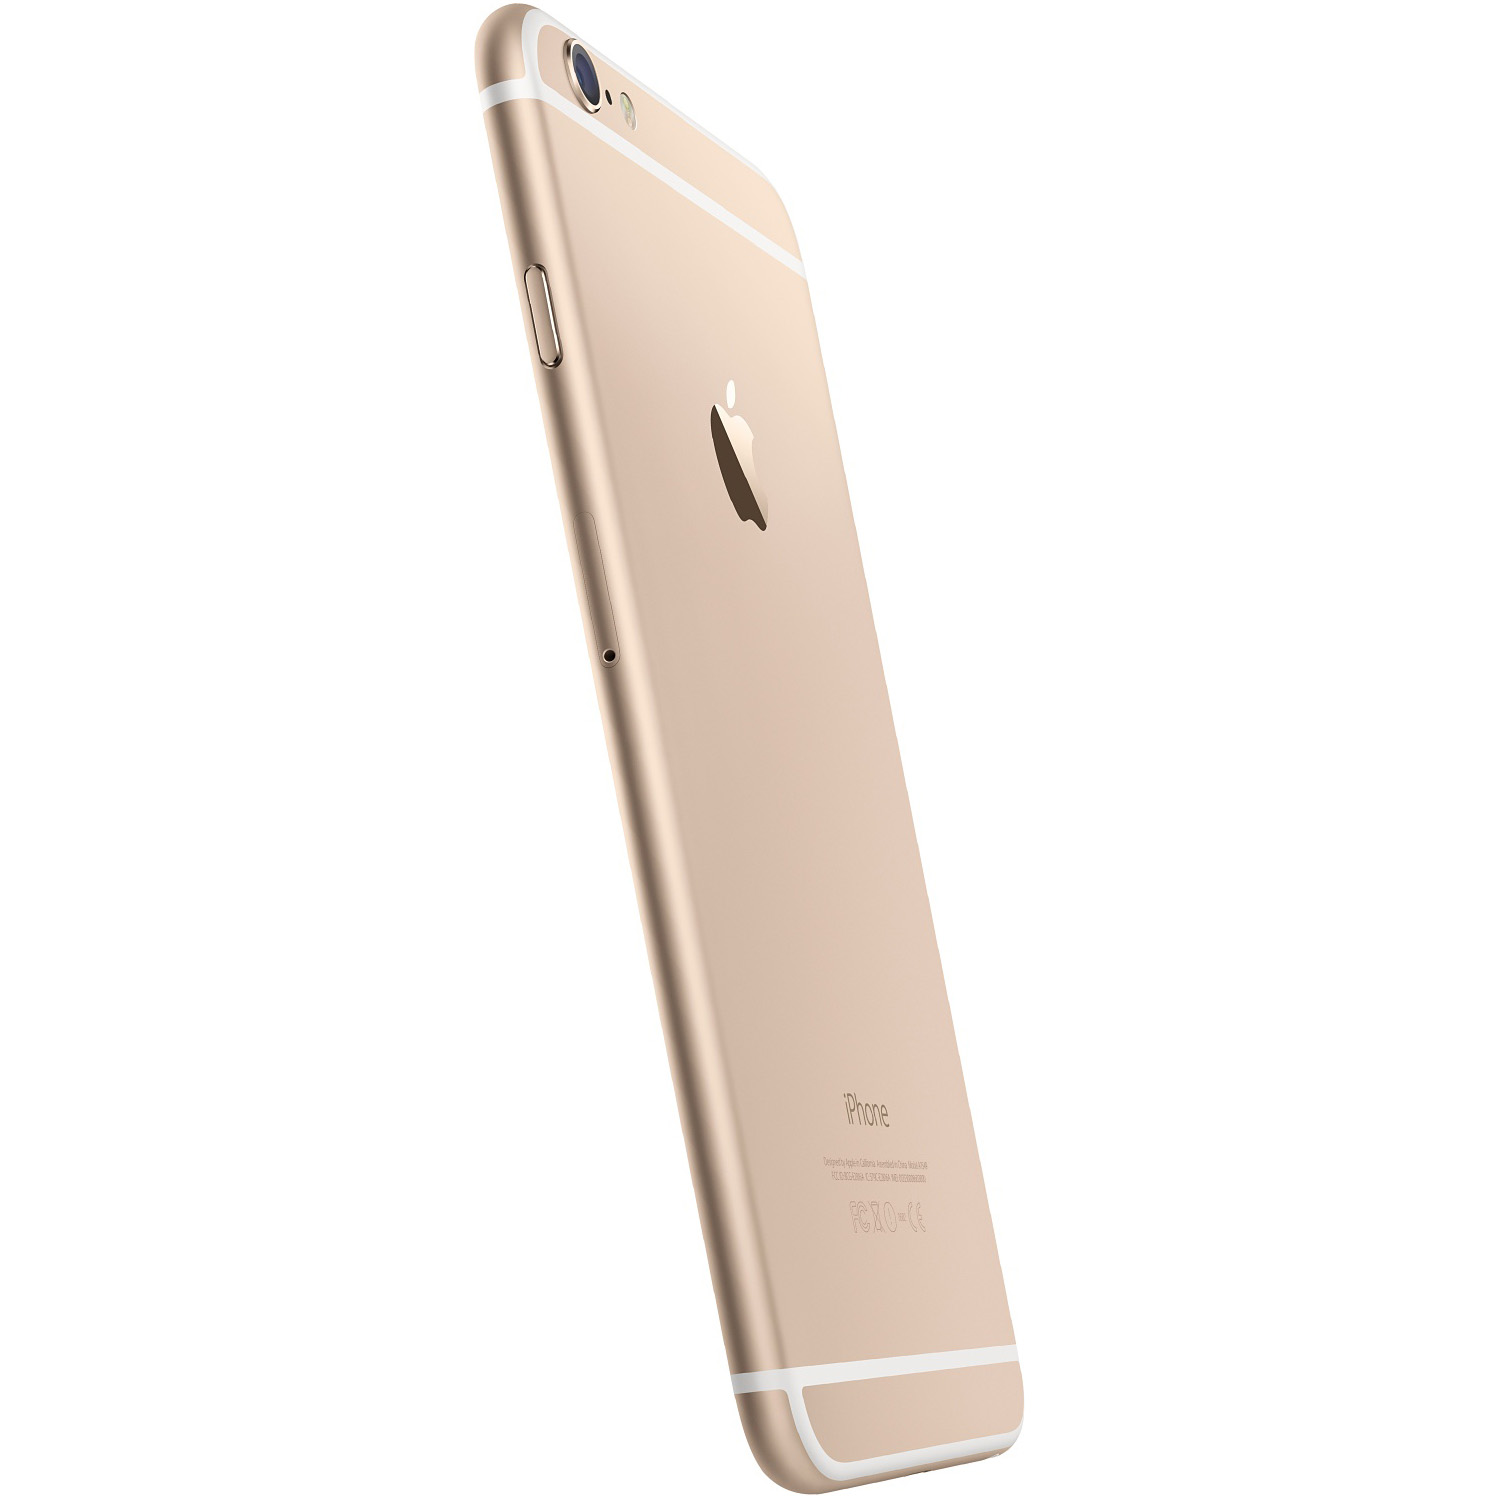 Iphone 6 Plus 128gb Grade A Gsm Store 64gb Replacement By Apple